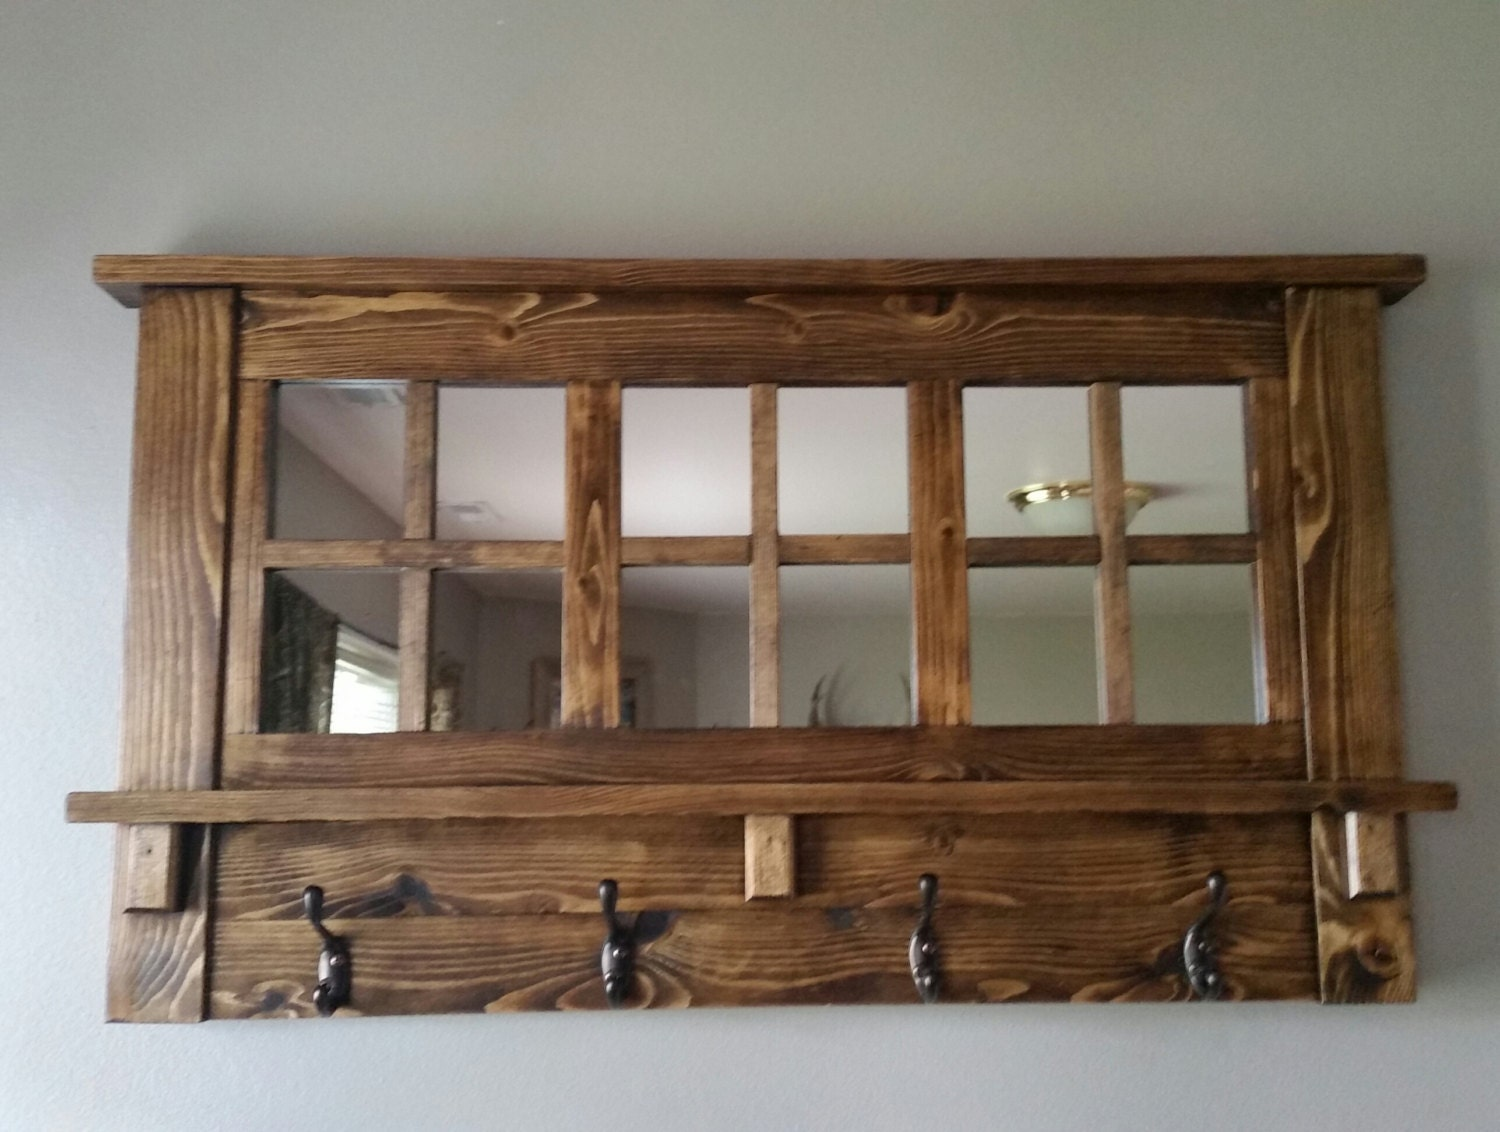 coat organizer racks astonishing rustic wall hairy ga wooden shelf entryway mounted with mount lowes rack decorati mirror hooks